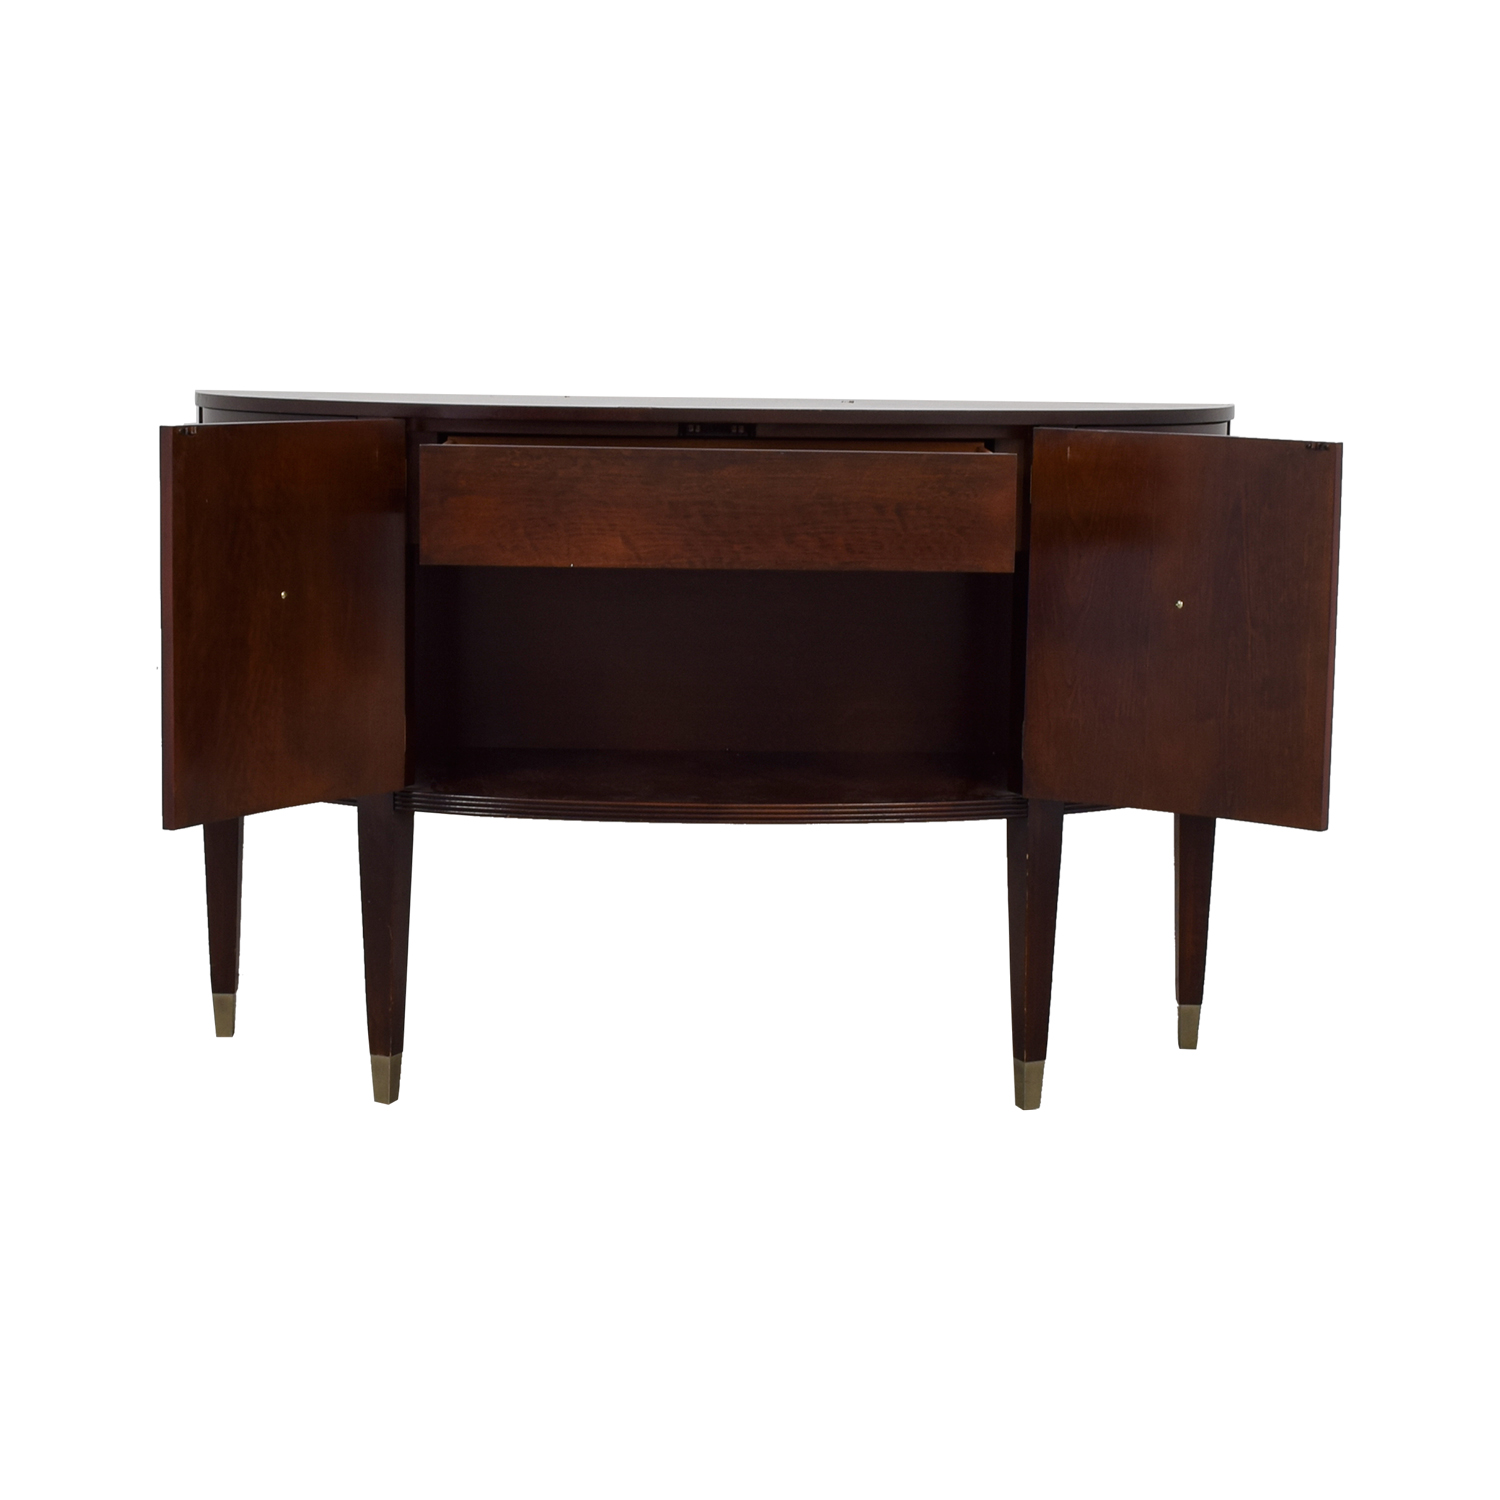 Ethan Allen Ethan Allen Wood Buffet Console Table used